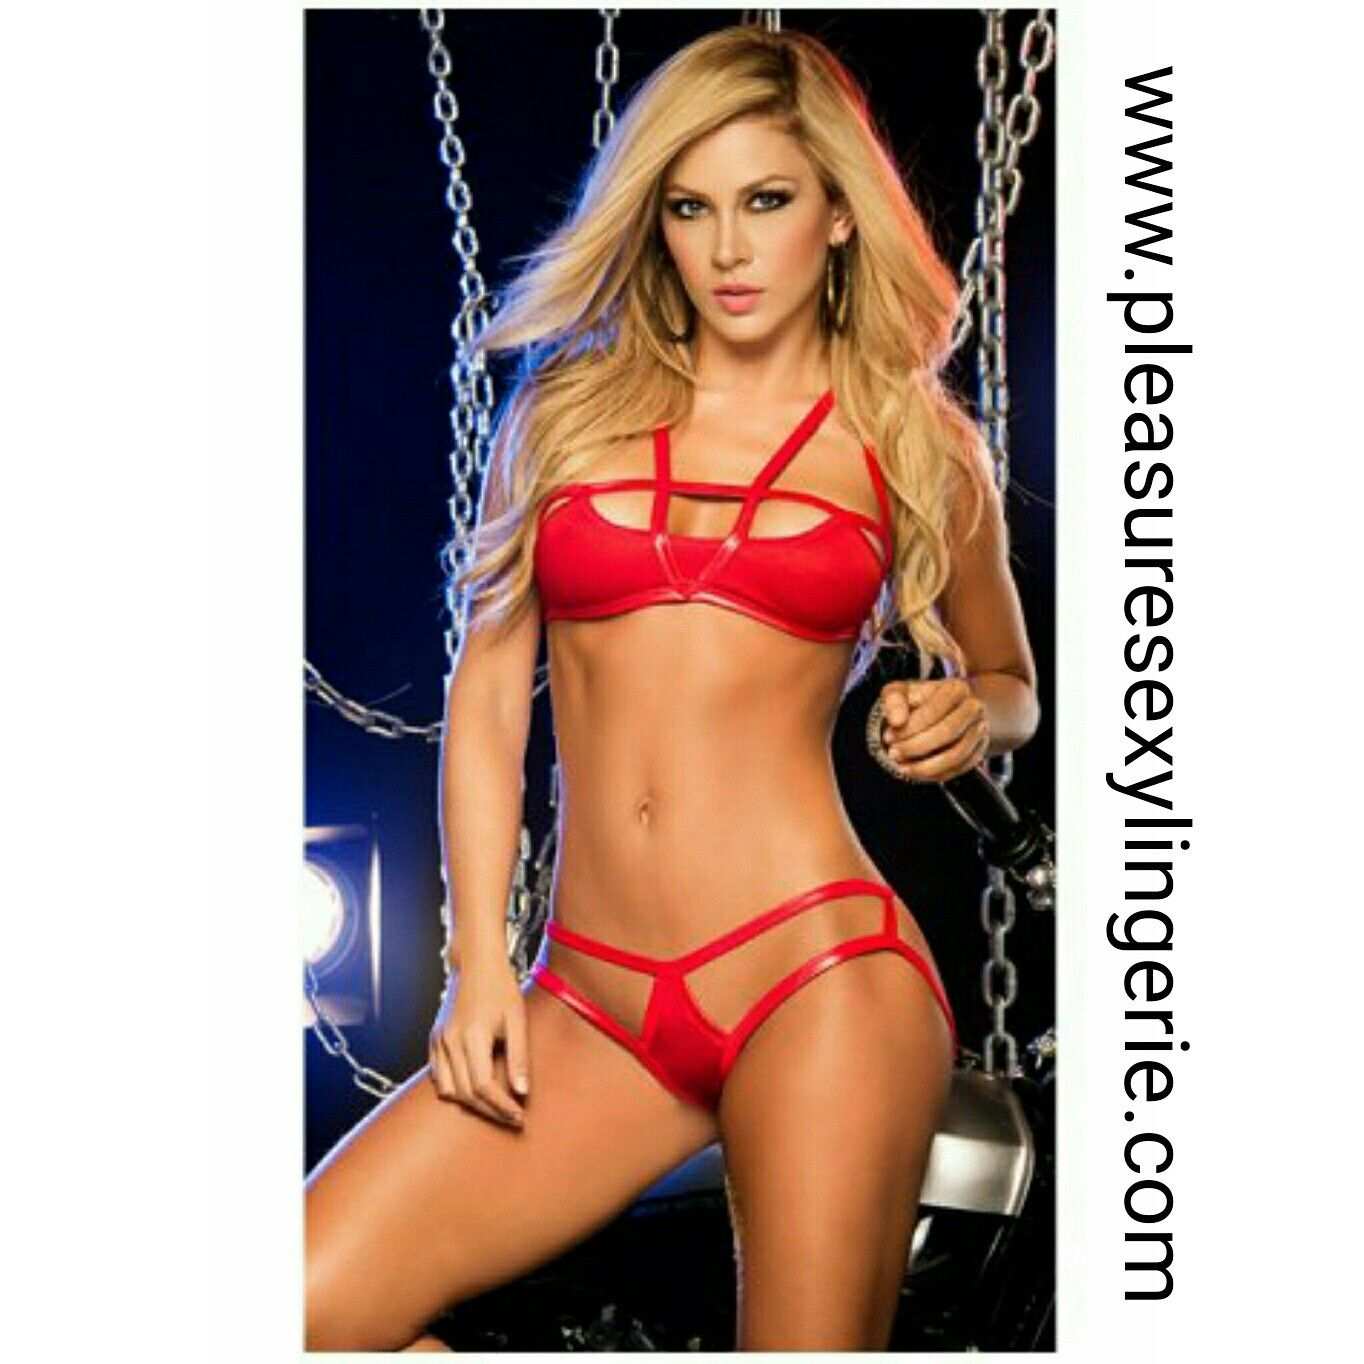 Red Hot.♨  pleasuresexylingerie  sexylingerie  hotlingerie  lingerie   twopiece  bikini  bathingsuit  red  hot  hotwomen  pleasure   braandpantysets  bras ... 8886ac2fcb24